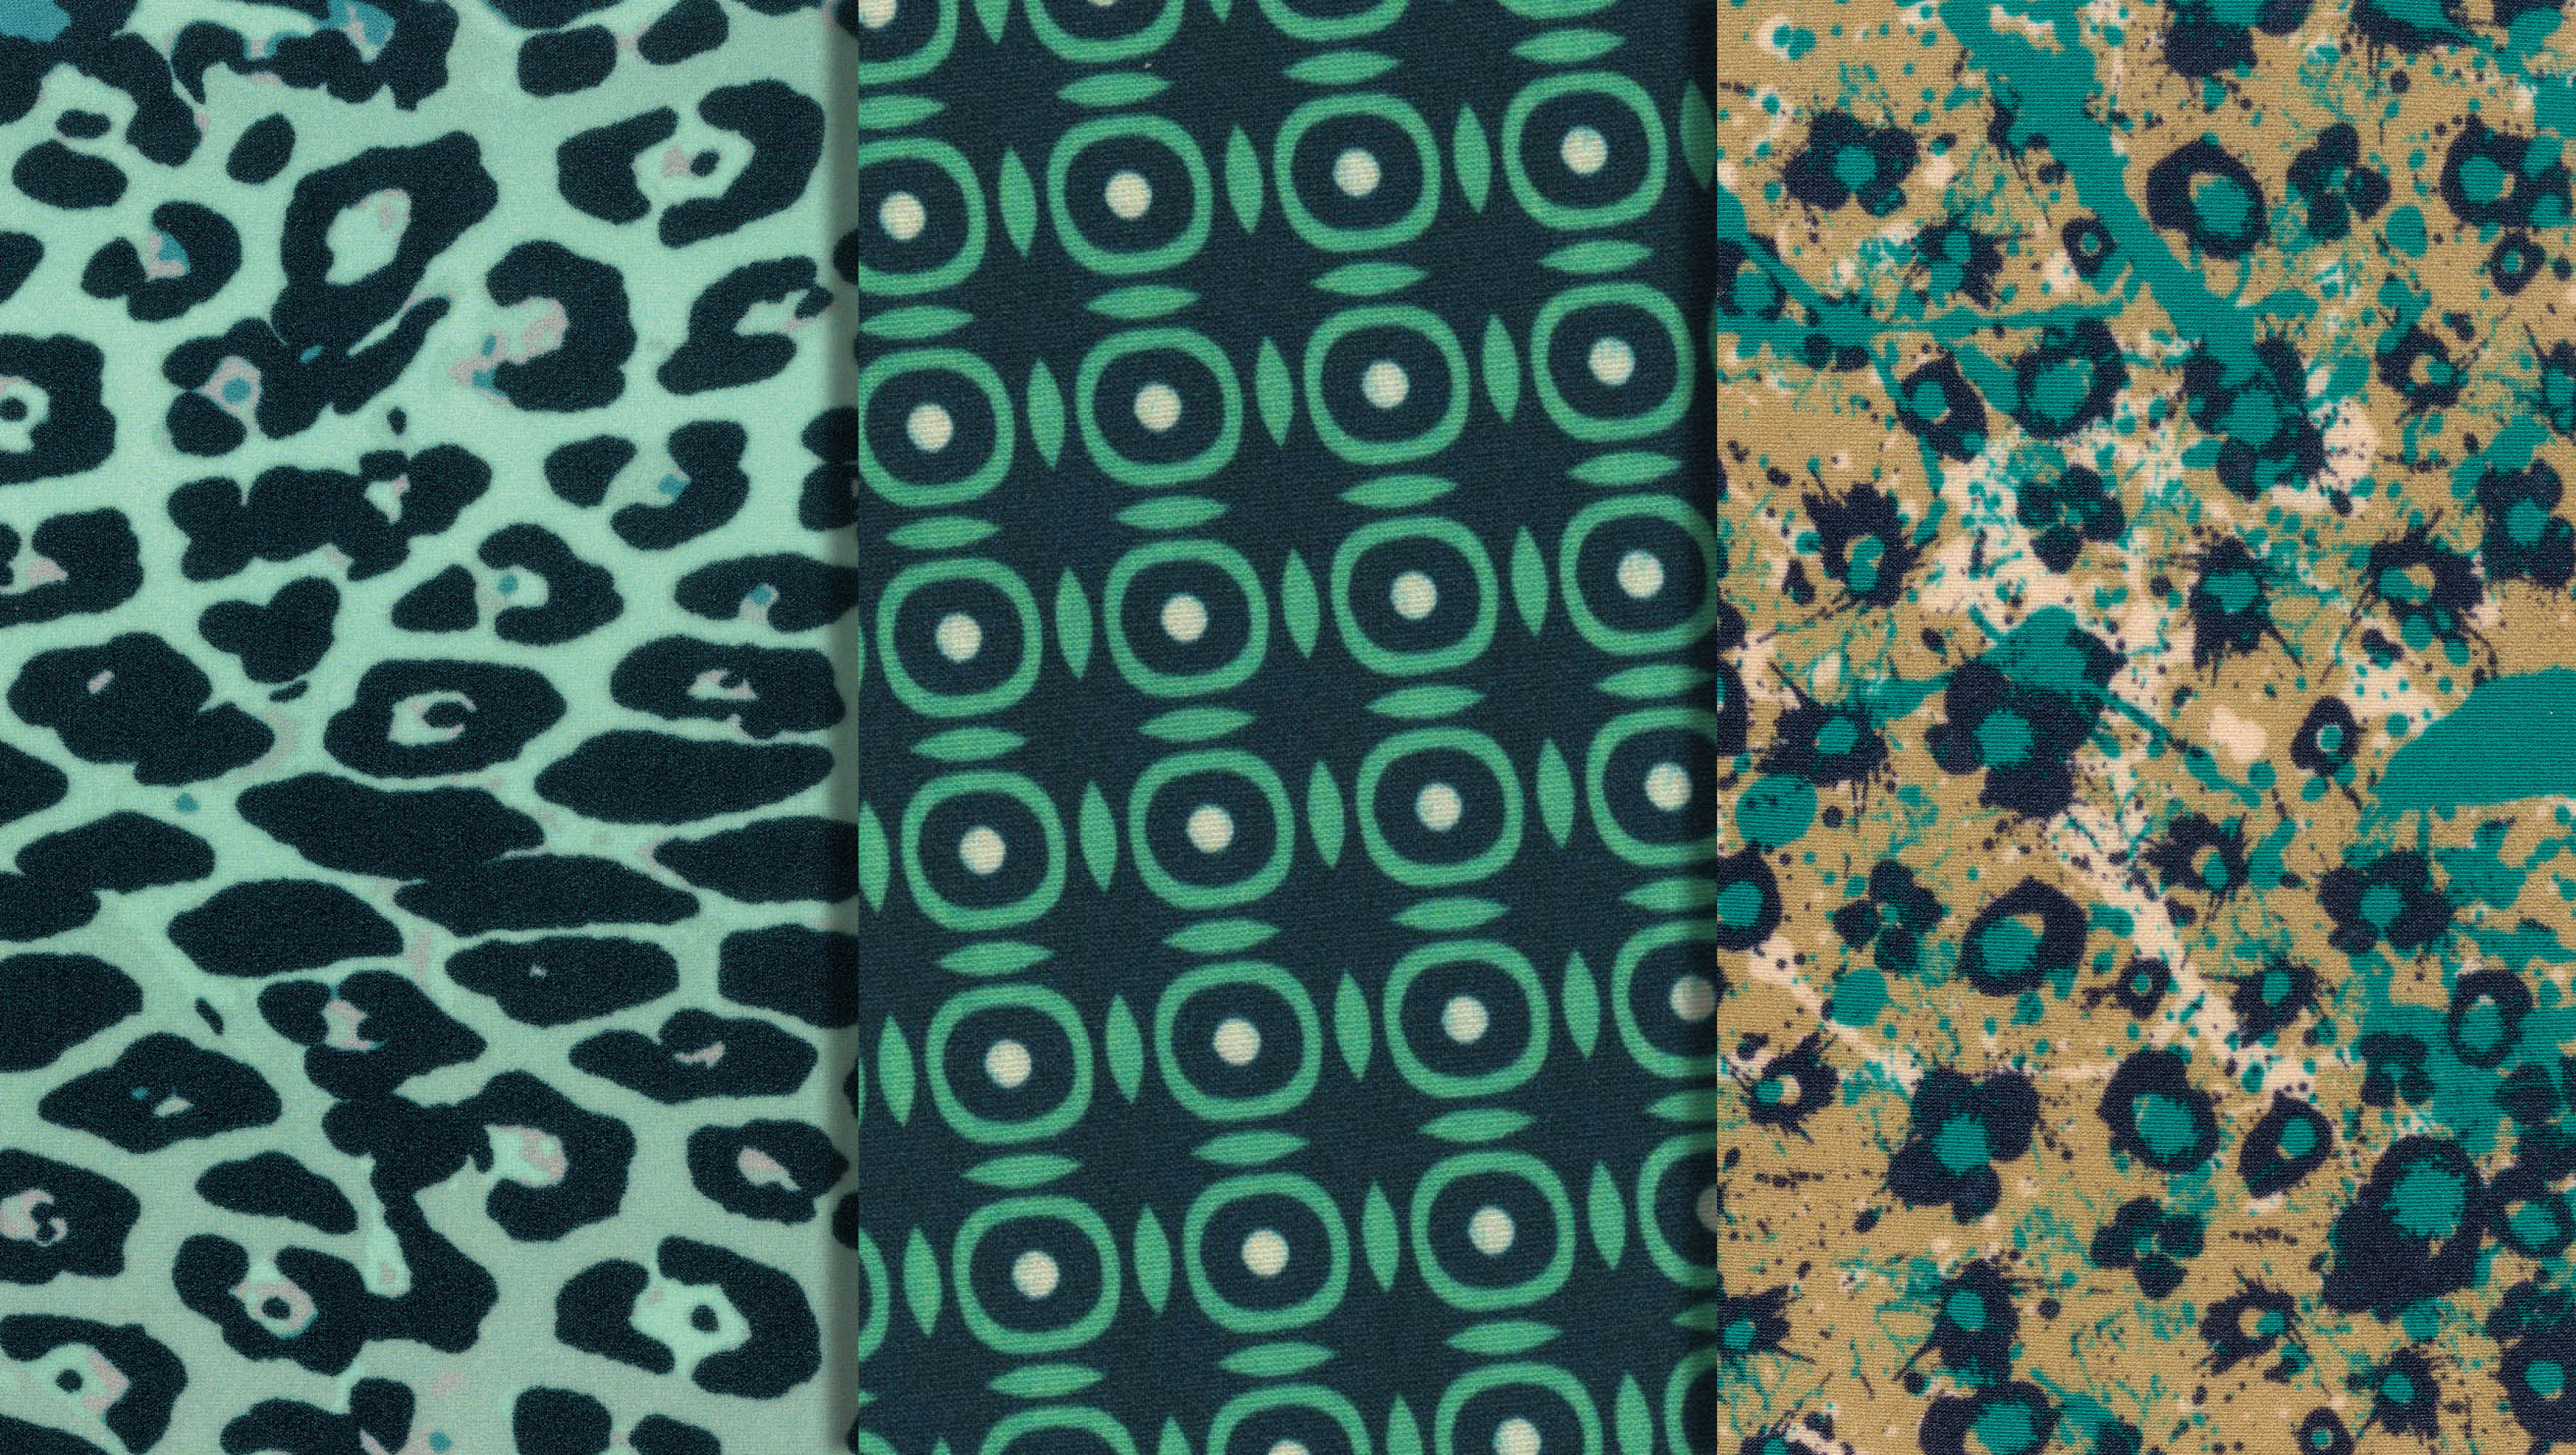 28 fabric design trends 2017 trends patternbank print fabric design trends 2017 eurojersey launches ss17 swimwear collection at maredimoda